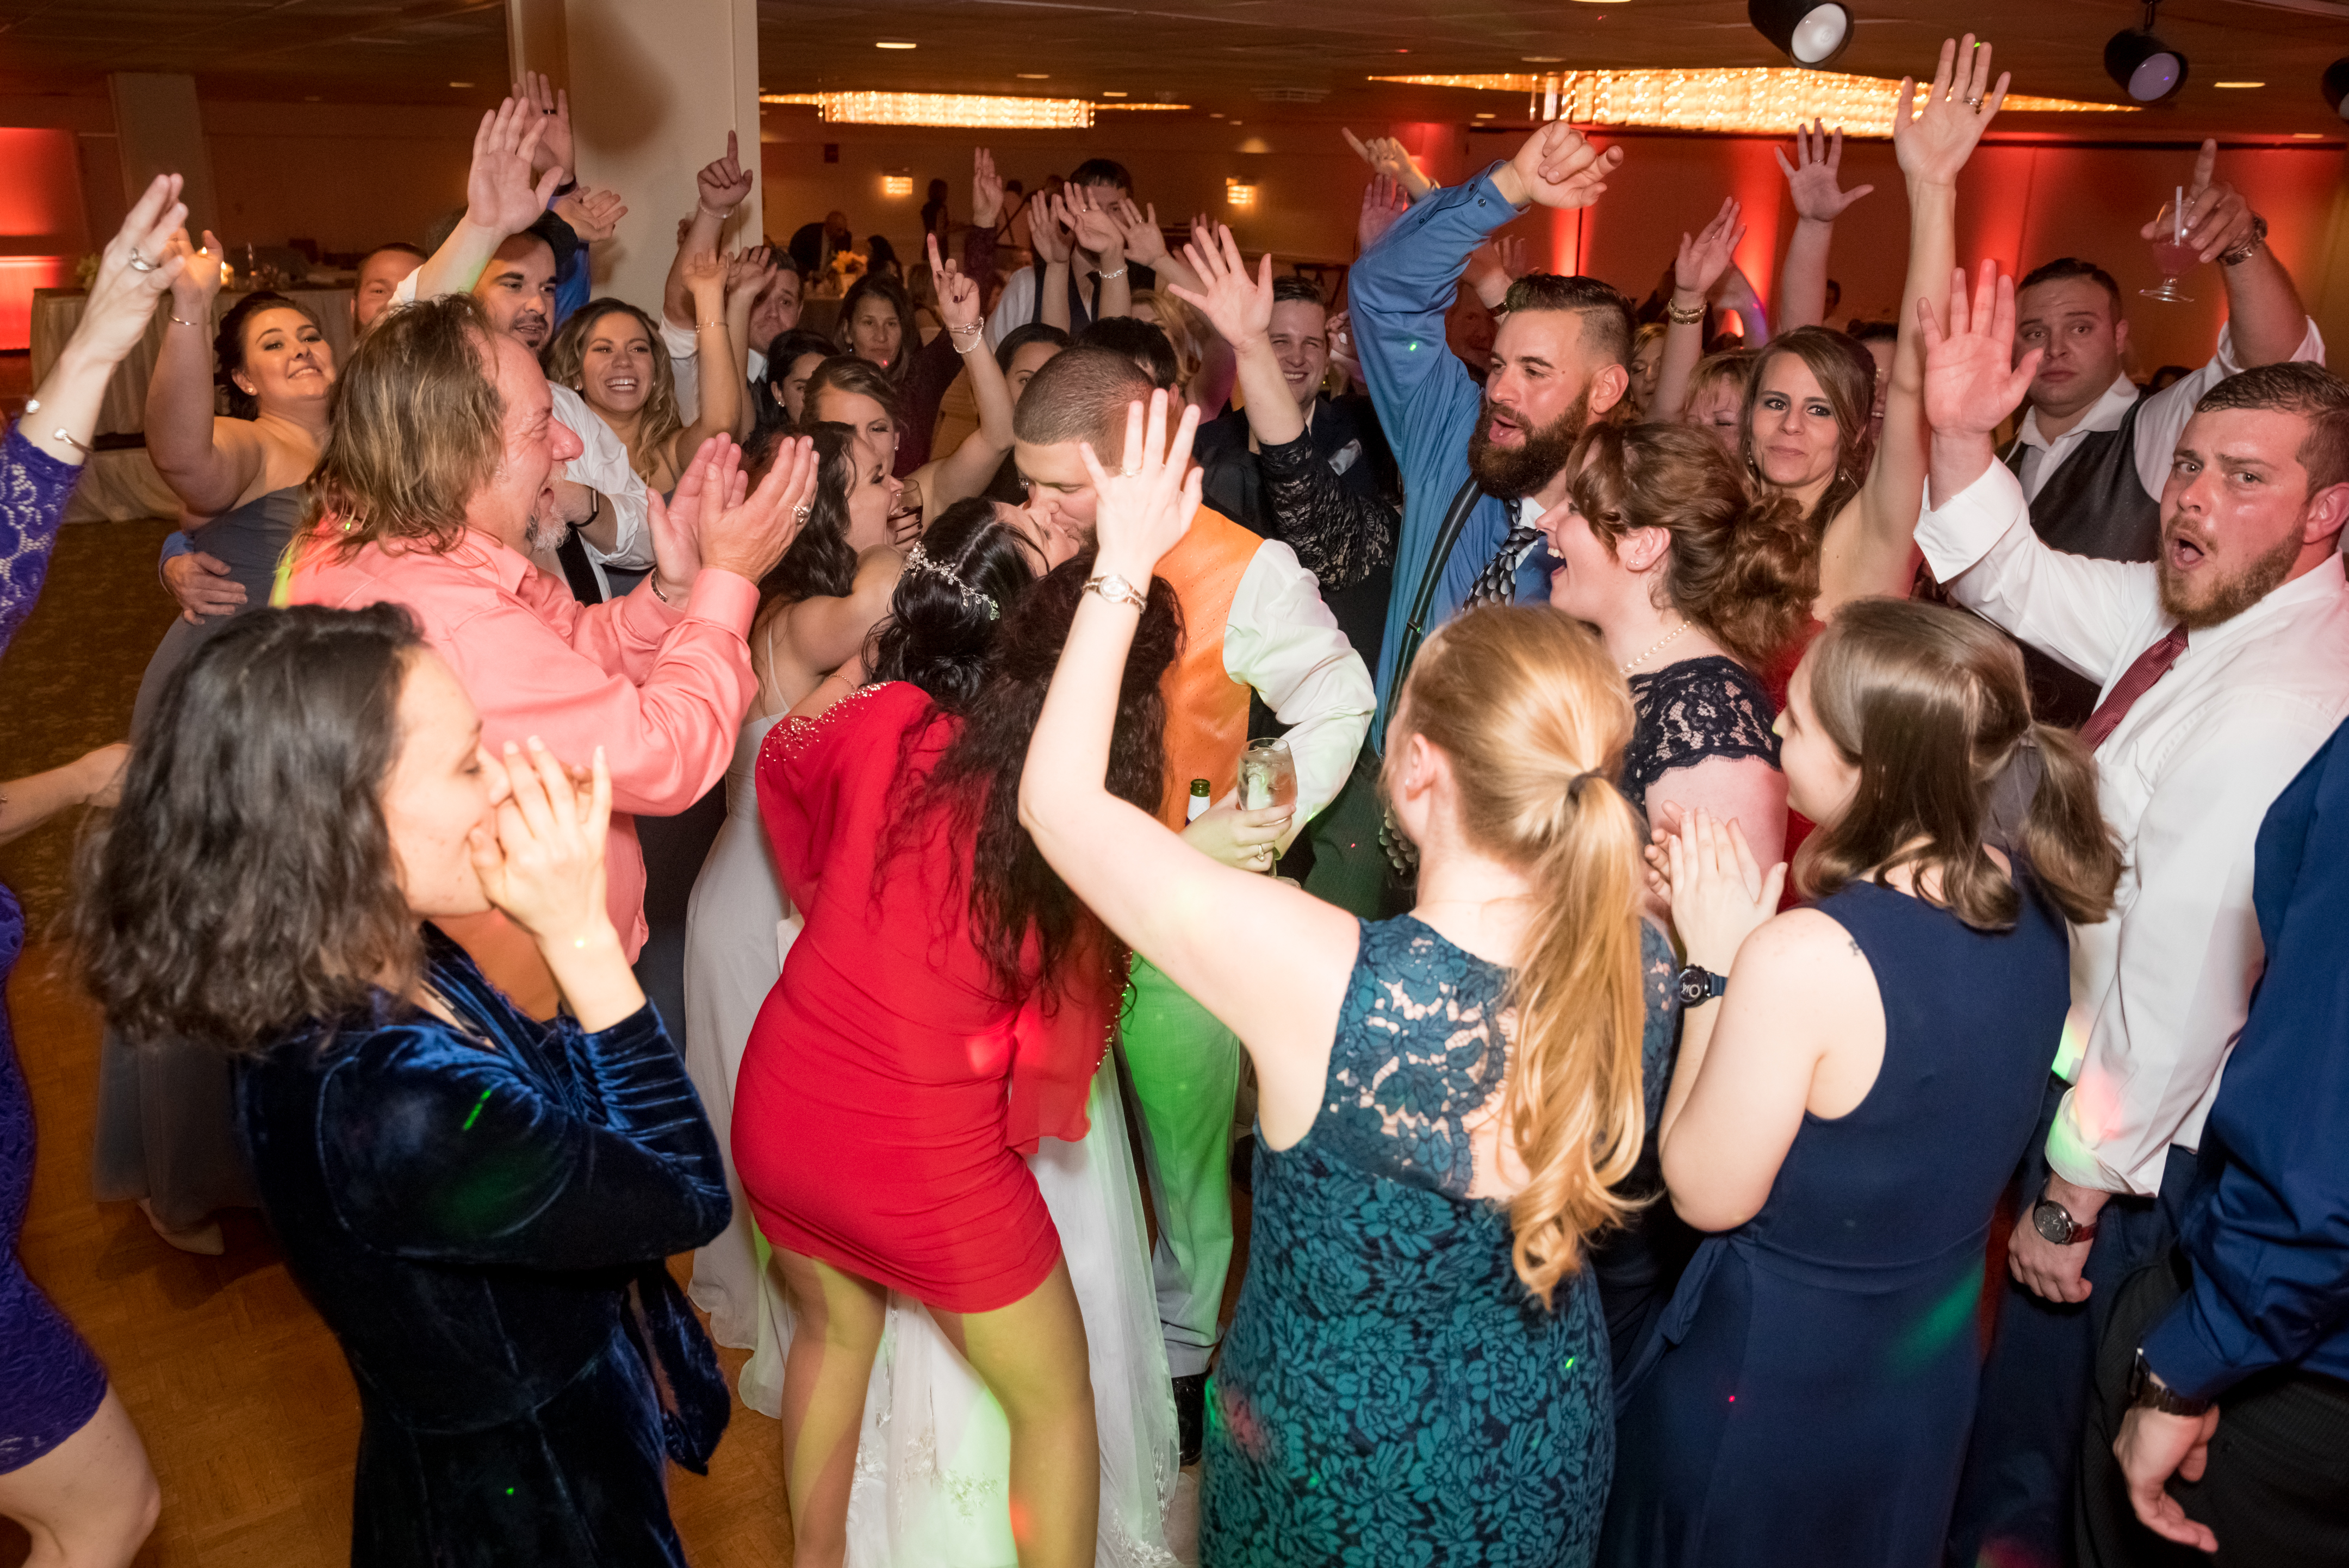 Invite That One Friend Or Two Every Great Party Has Person Duo Does Not Leave The Dance Floor And Throws Down All Night